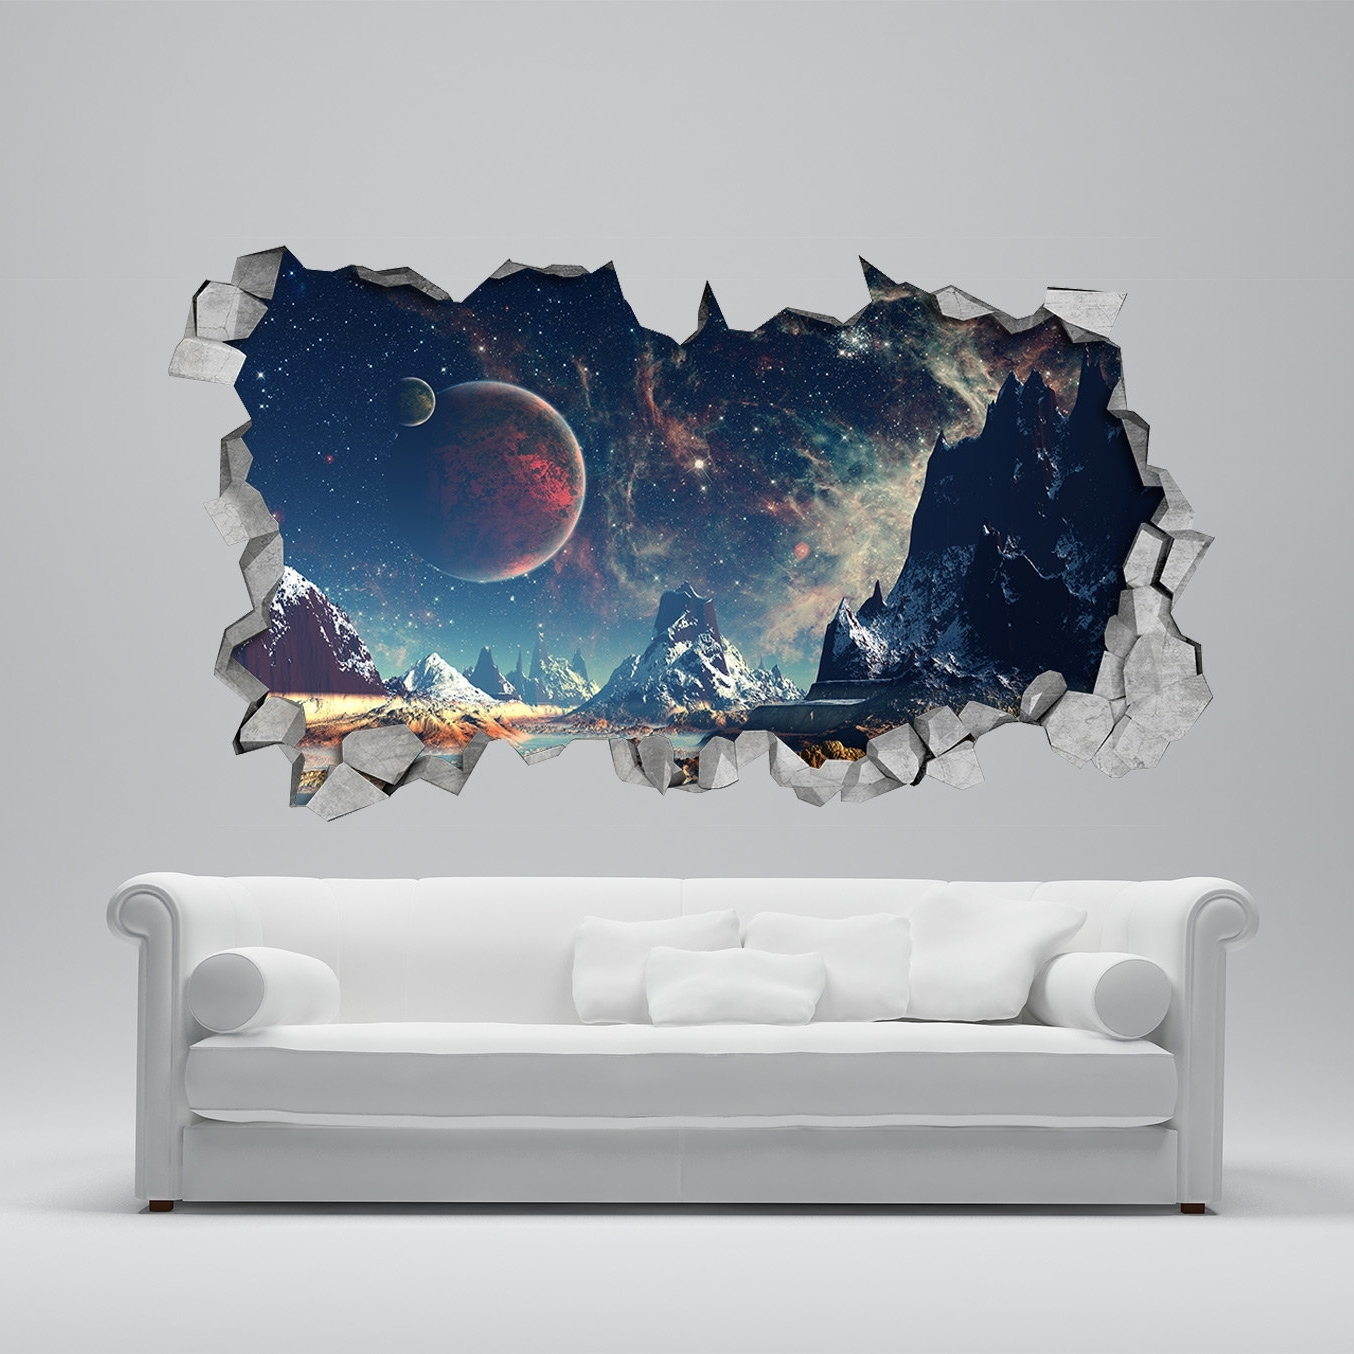 3D Wall Art For Bedrooms For Most Up To Date 2018 Window Shark 3D Wall Art Sticker For Bedrooms Blue Cm In (View 3 of 15)